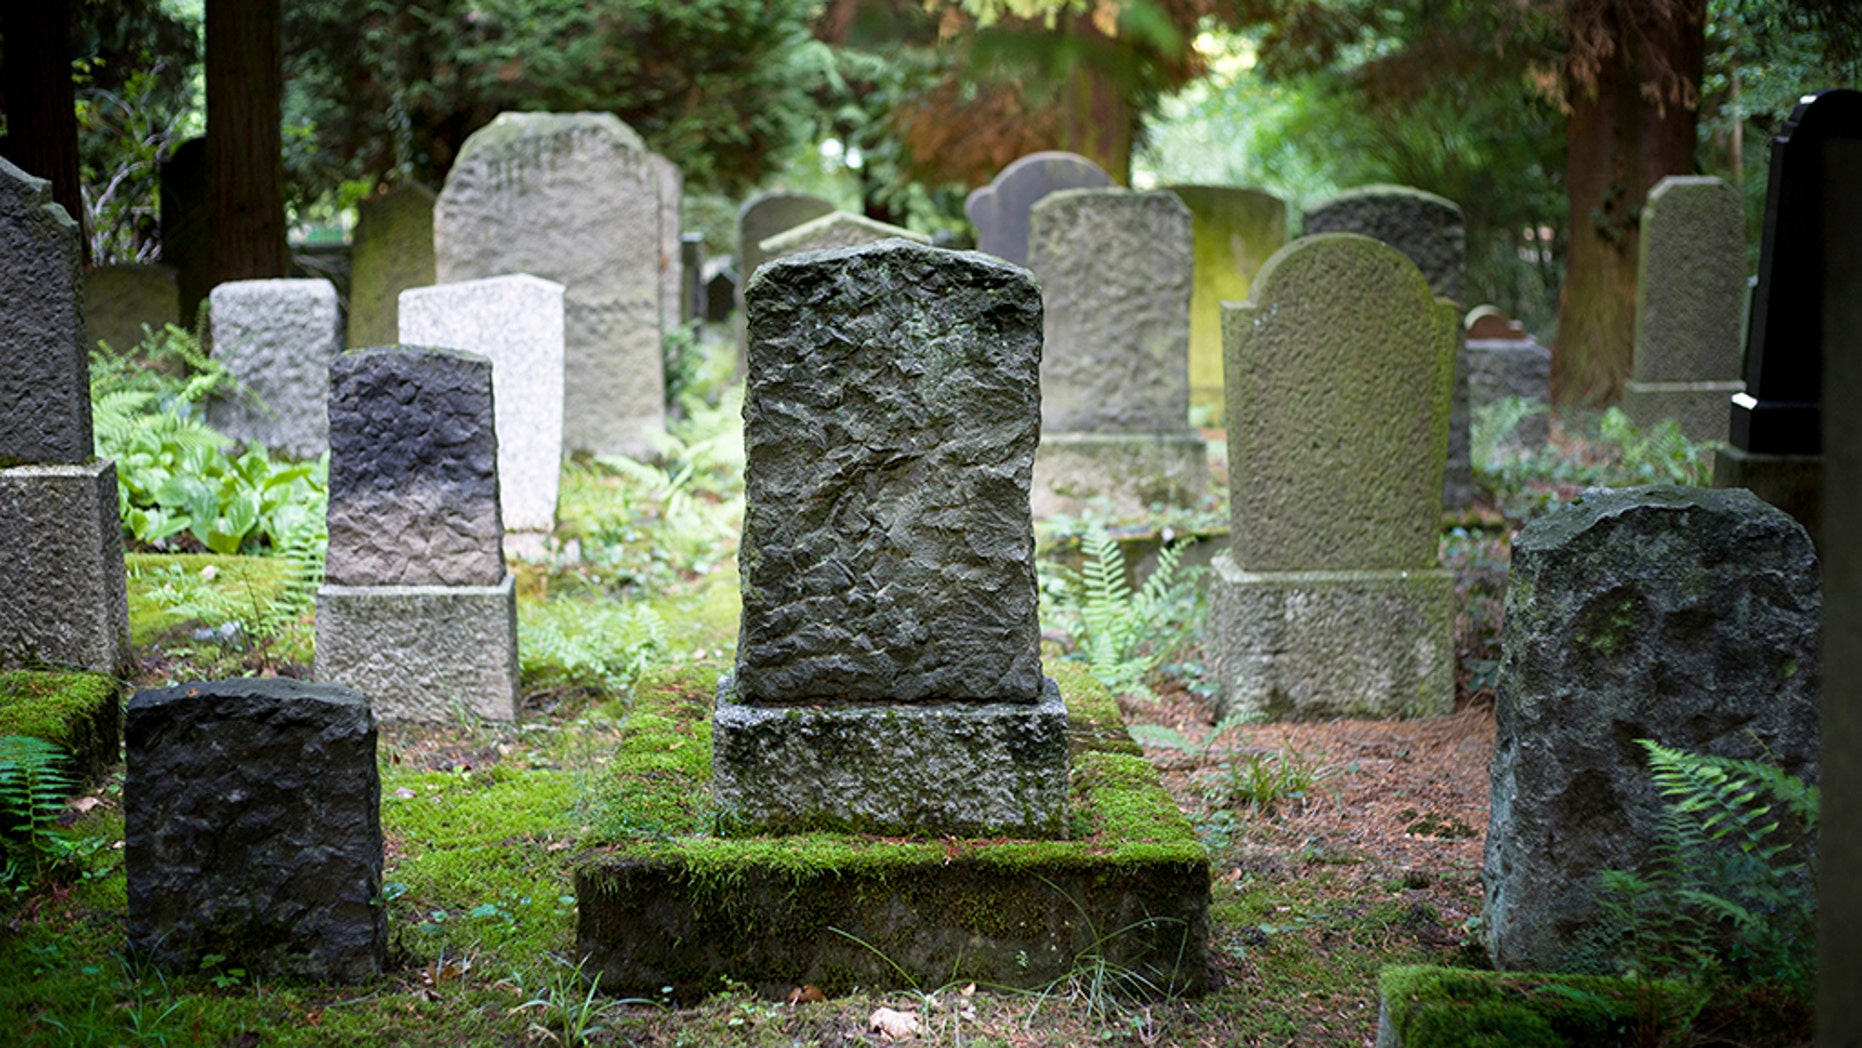 A cemetery manager in Connecticut is accused of a macabre scheme to profit from the new over the old.